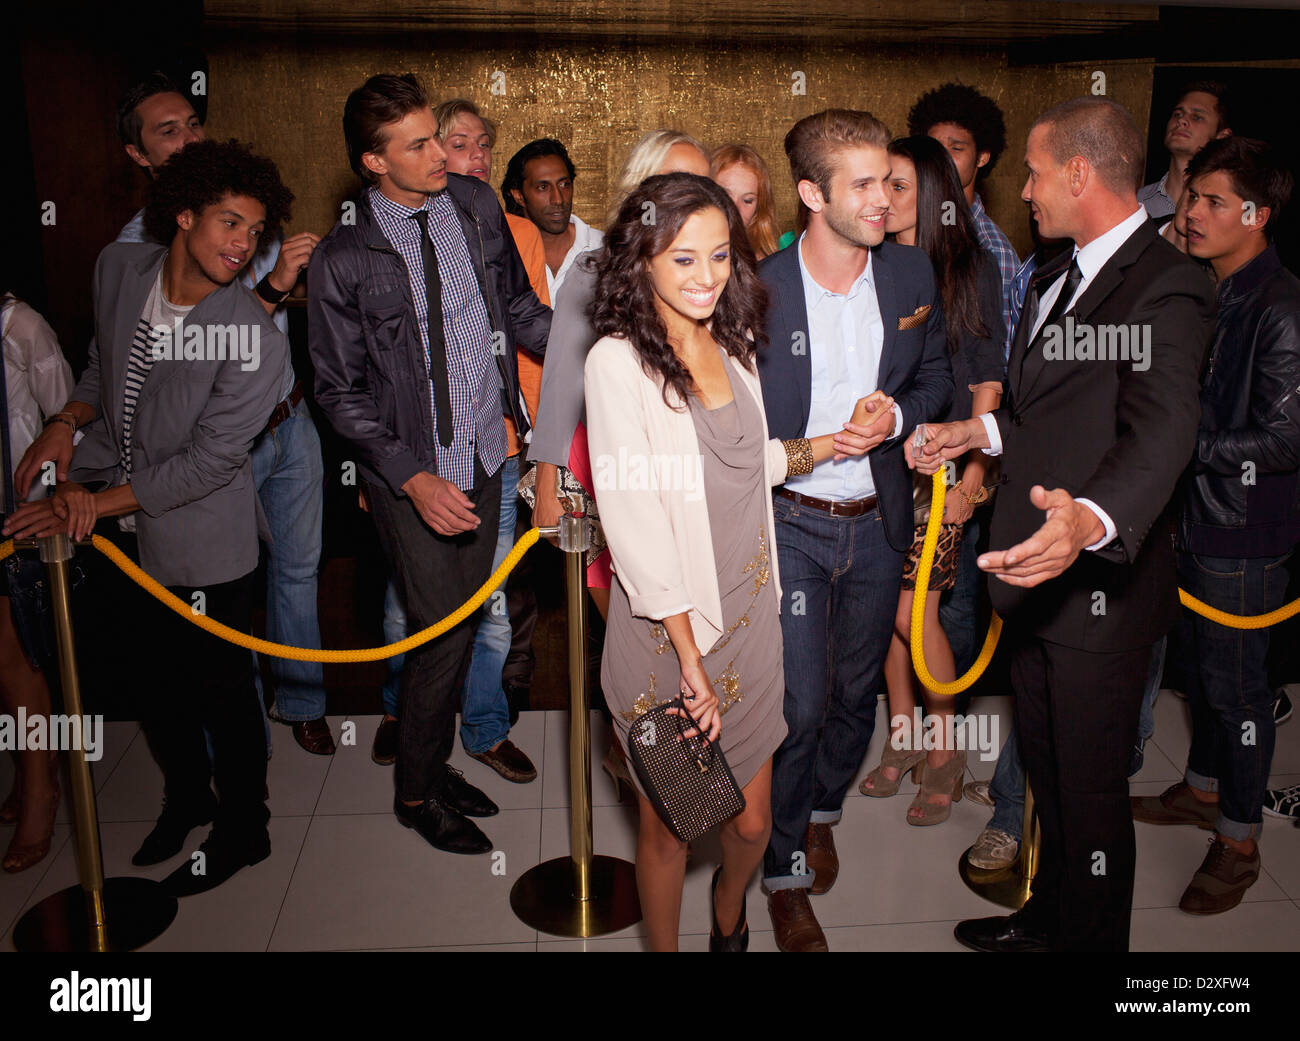 Bouncer granting couple access outside nightclub - Stock Image